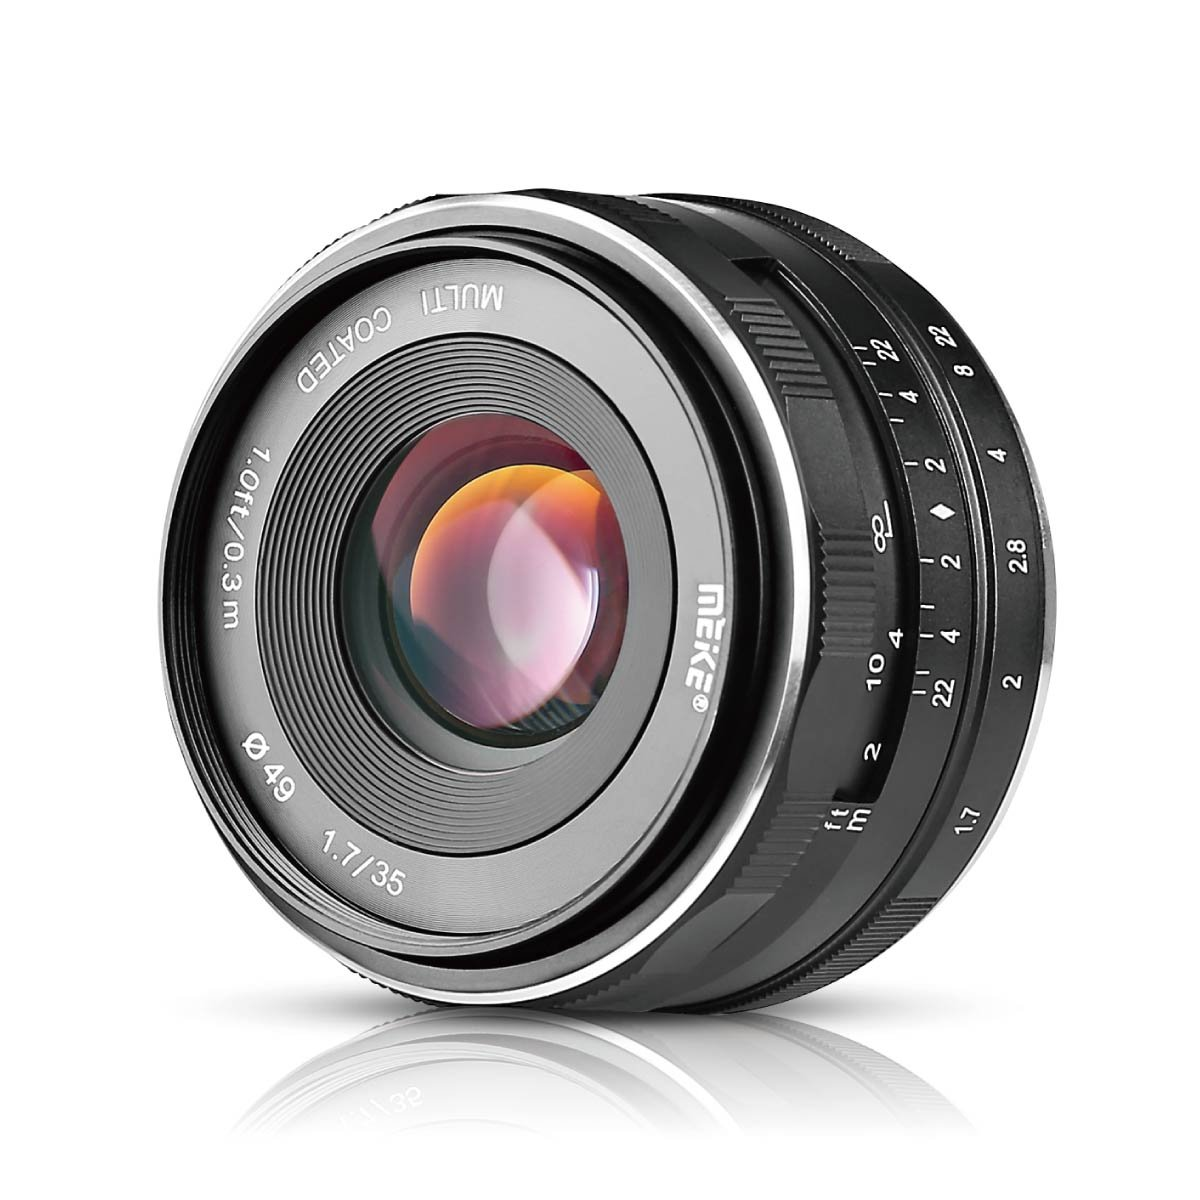 Meike MK-E-35-1.7 35mm F1.7 Large Aperture Manual Prime Fixed Lens APS-C Sony E-Mount Digital Mirrorless Cameras NEX 3 NEX 3N NEX 5 NEX 5T NEX 5R NEX 6 7 A5000, A5100, A6000, A6100,A6300 A6500 by MEKE